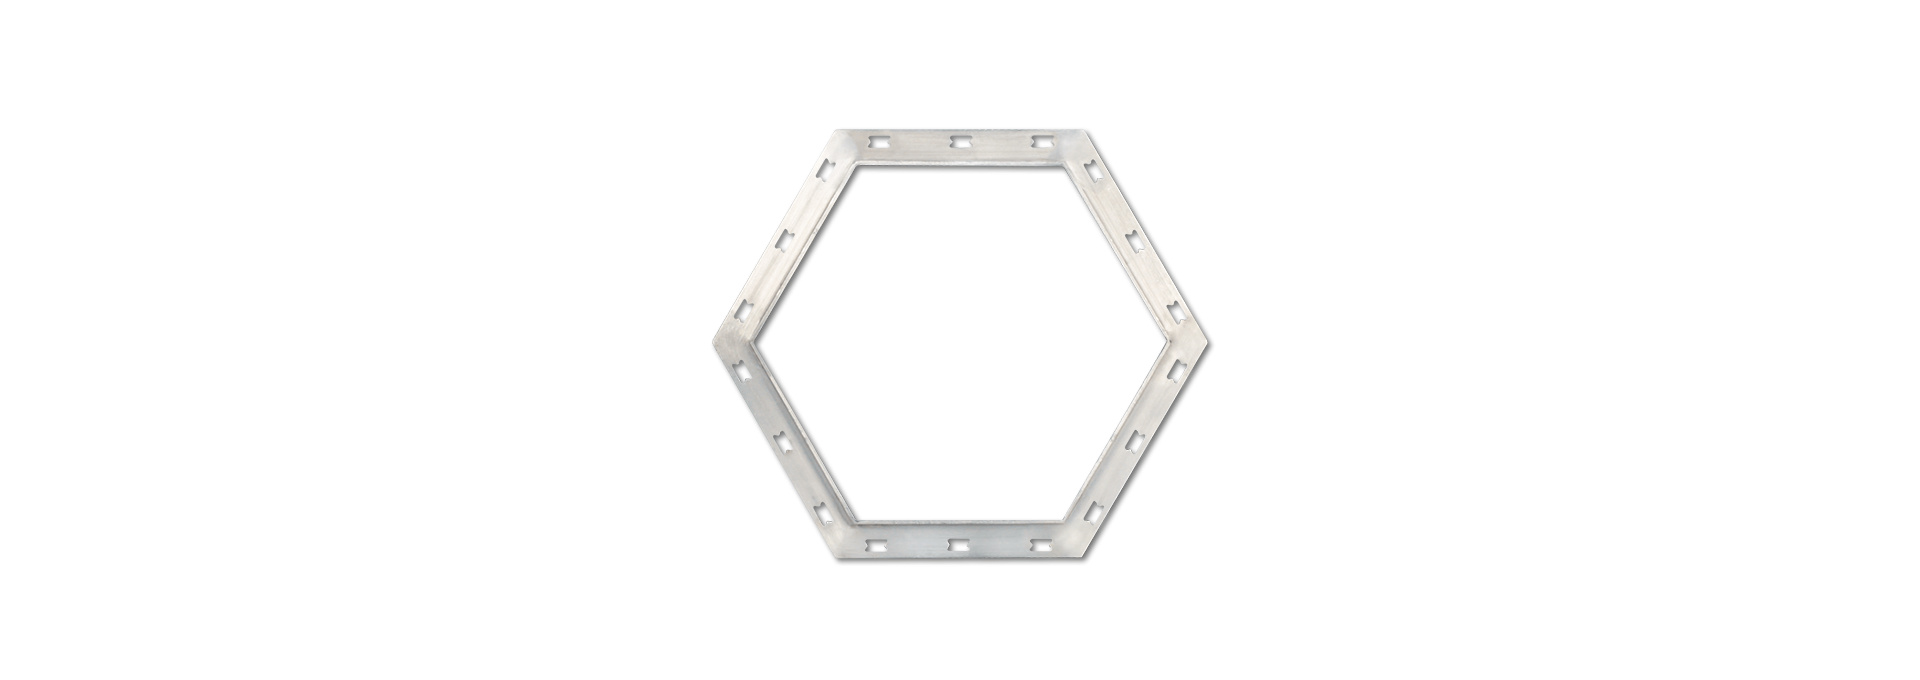 Stainless Hexagonal Frame Transition Joint Profiles PRFSS450-PGP006